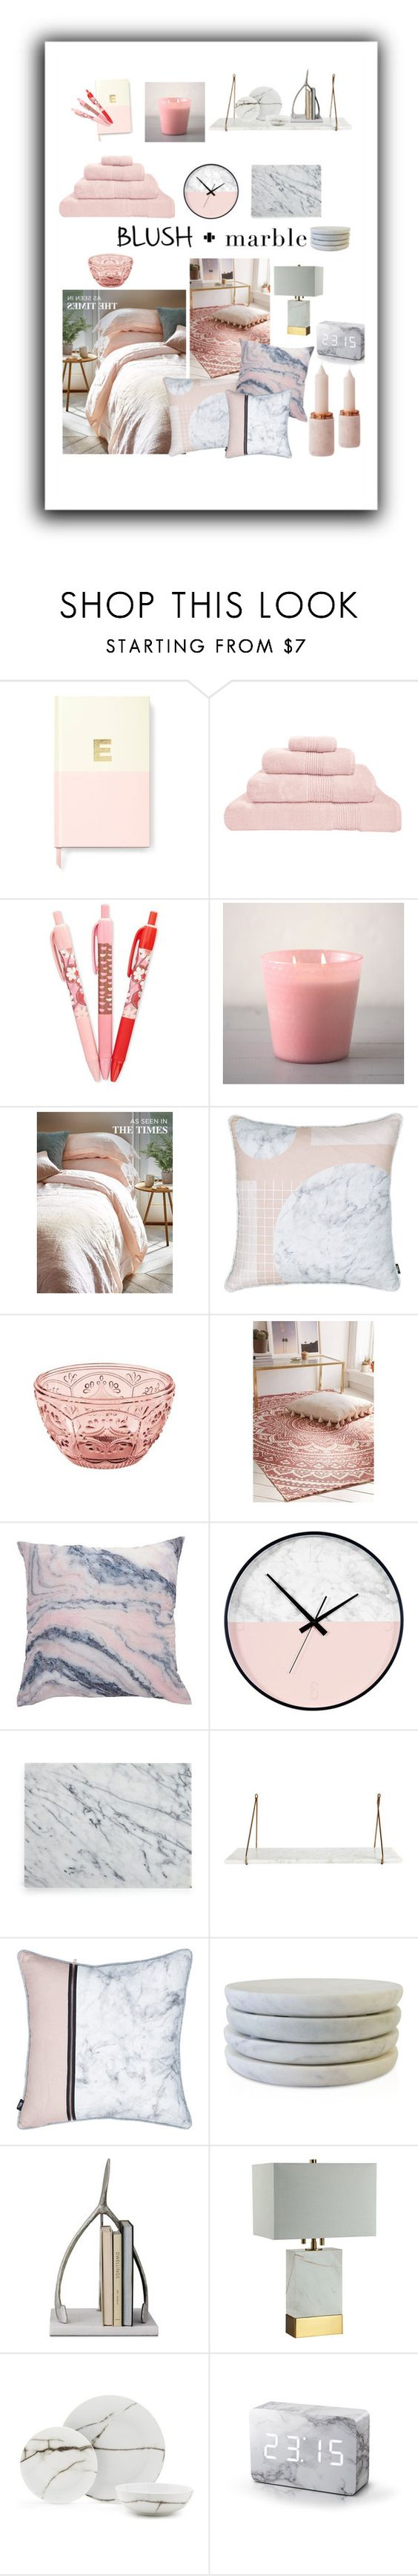 """Blush & Marble Decor"" by daisslovebeauty ❤ liked on Polyvore featuring interior, interiors, interior design, home, home decor, interior decorating, Kate Spade, Hamam, Vera Bradley and Fitz and Floyd"